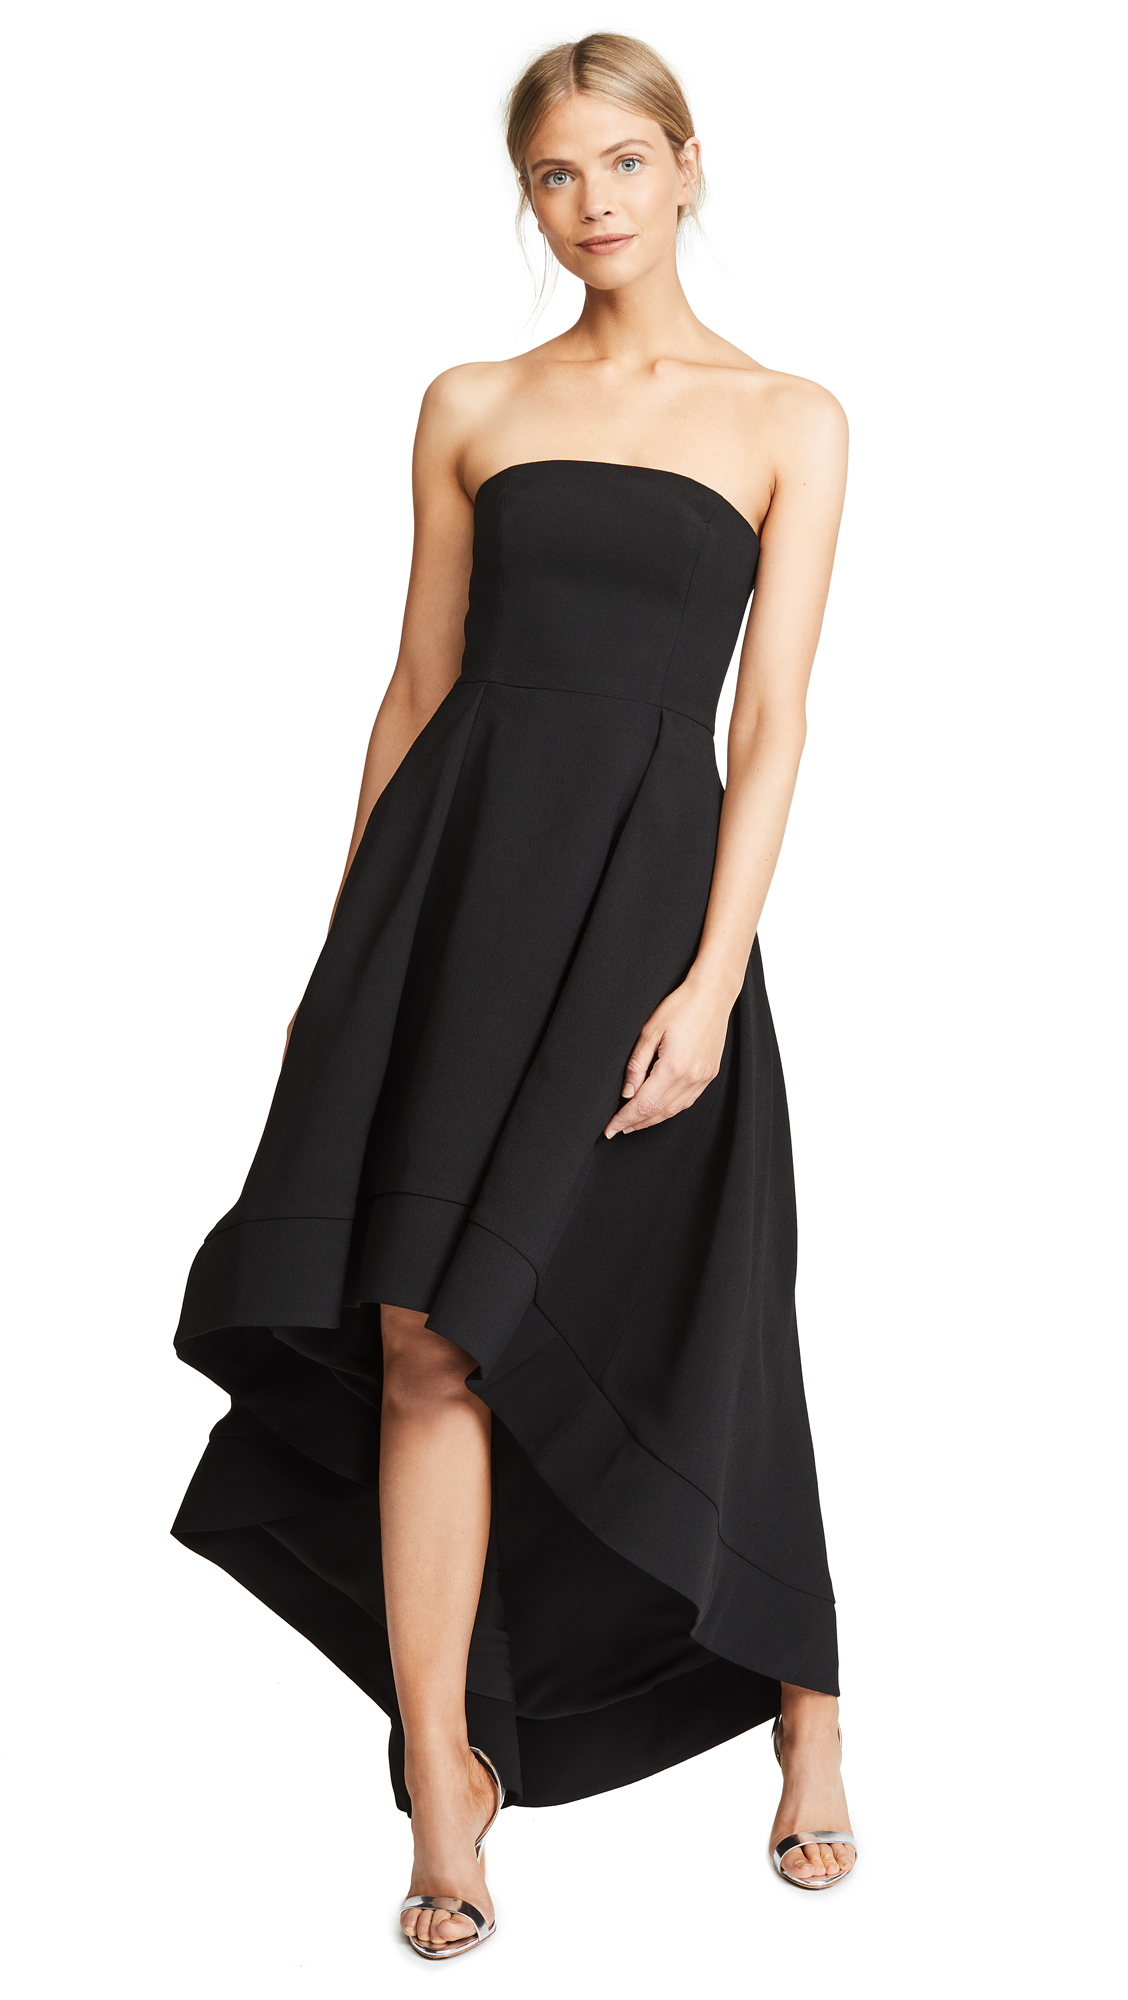 C/MEO COLLECTIVE Entice Gown in Black